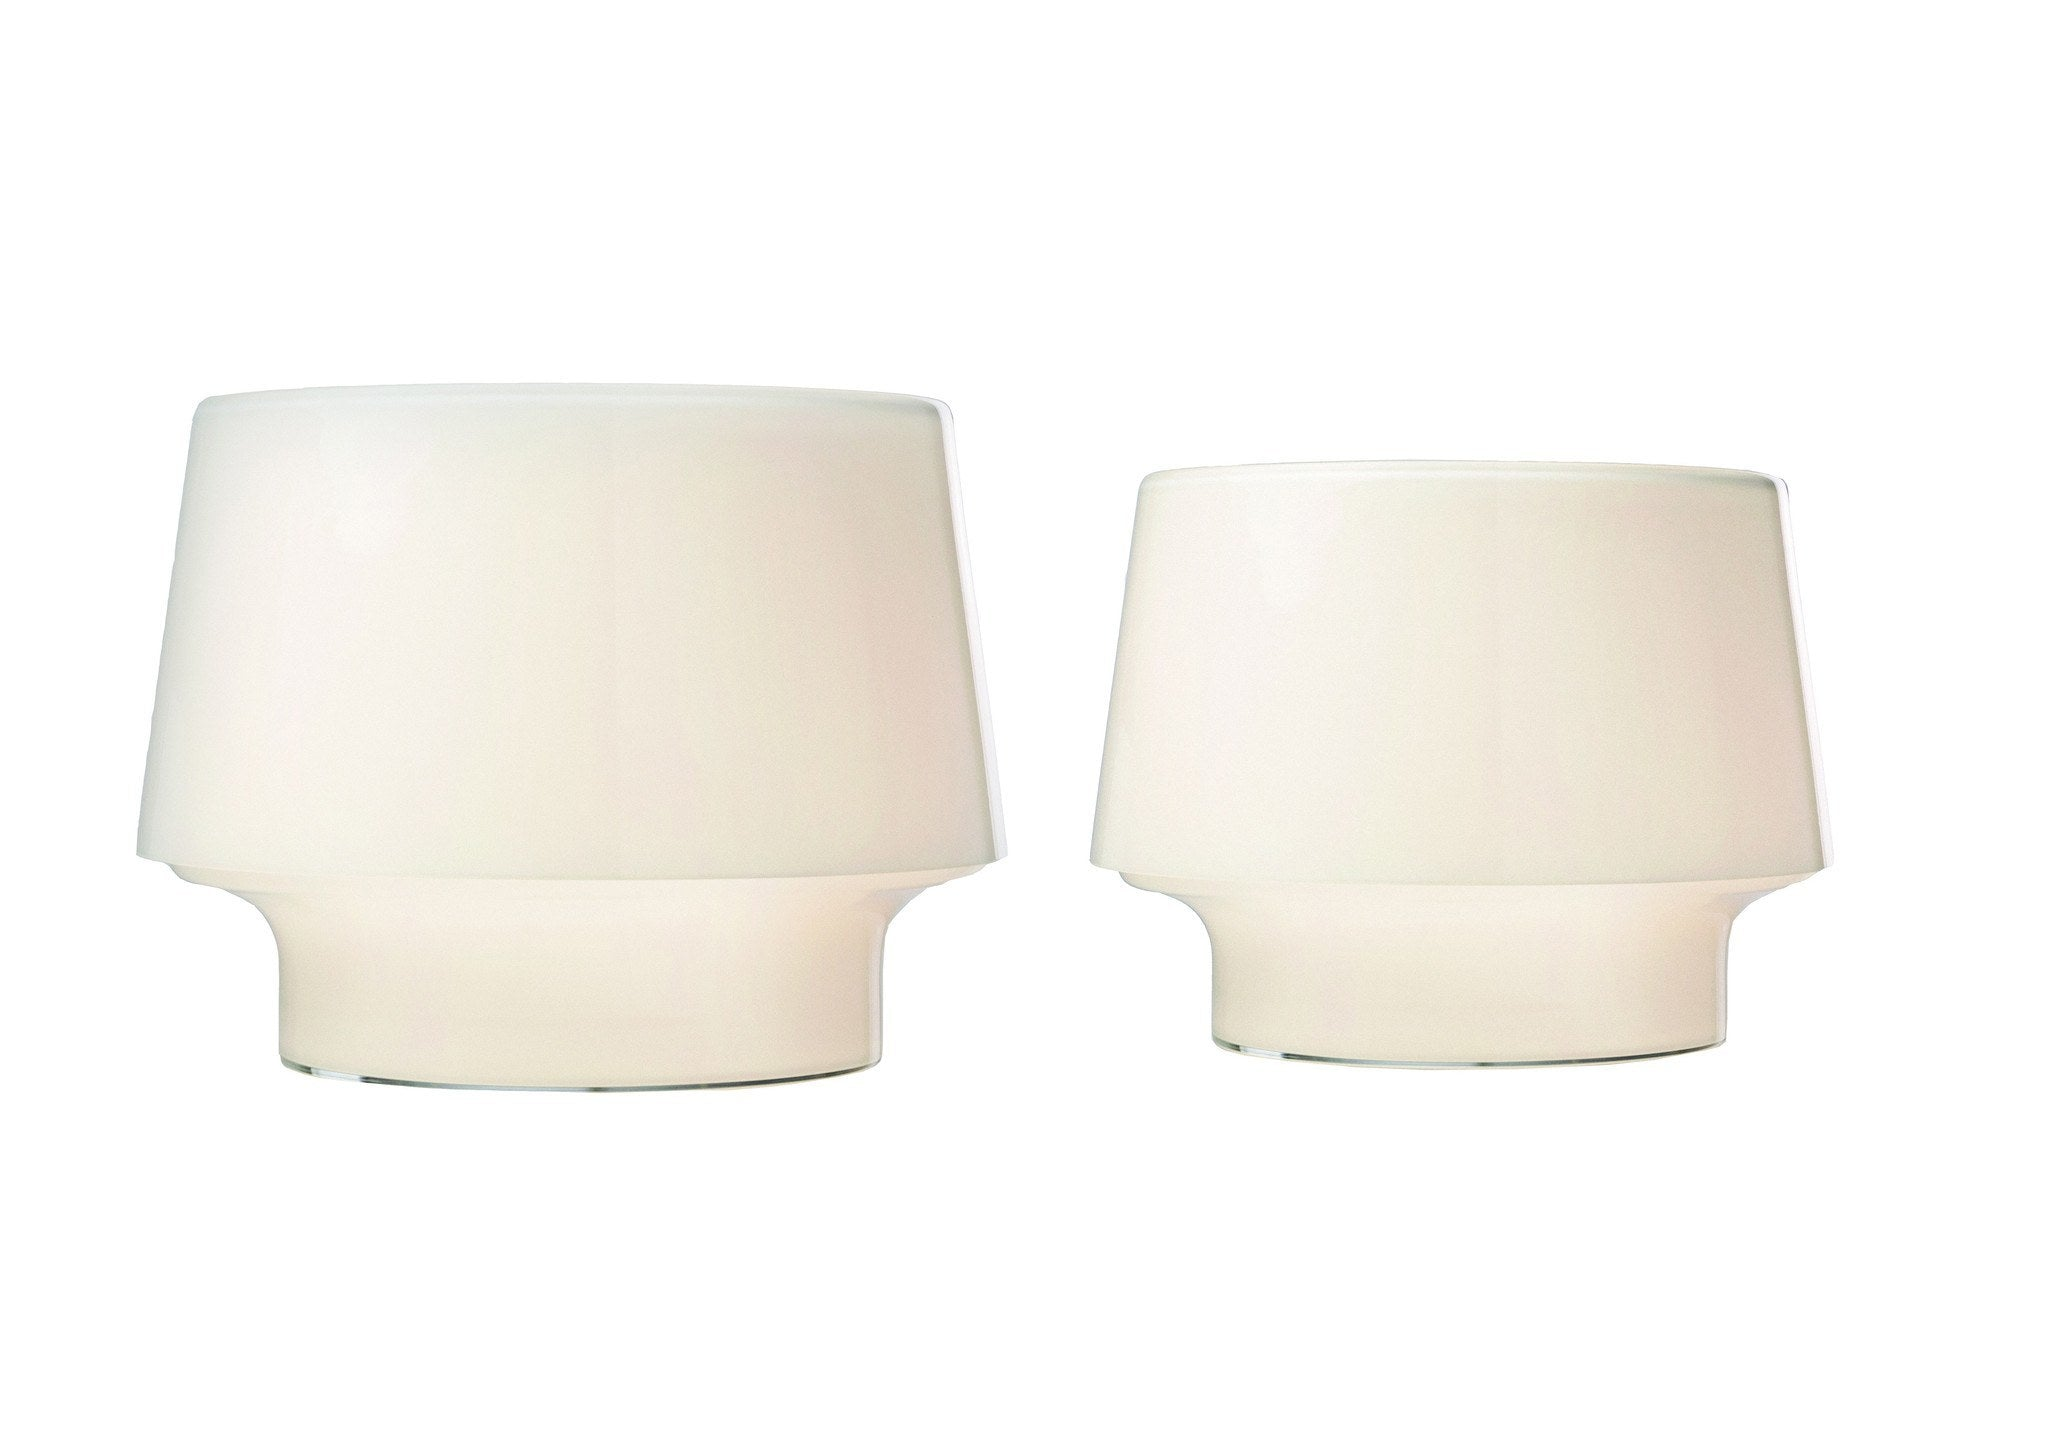 MUUTO COSY LAMP - Eclectic Cool  - 2